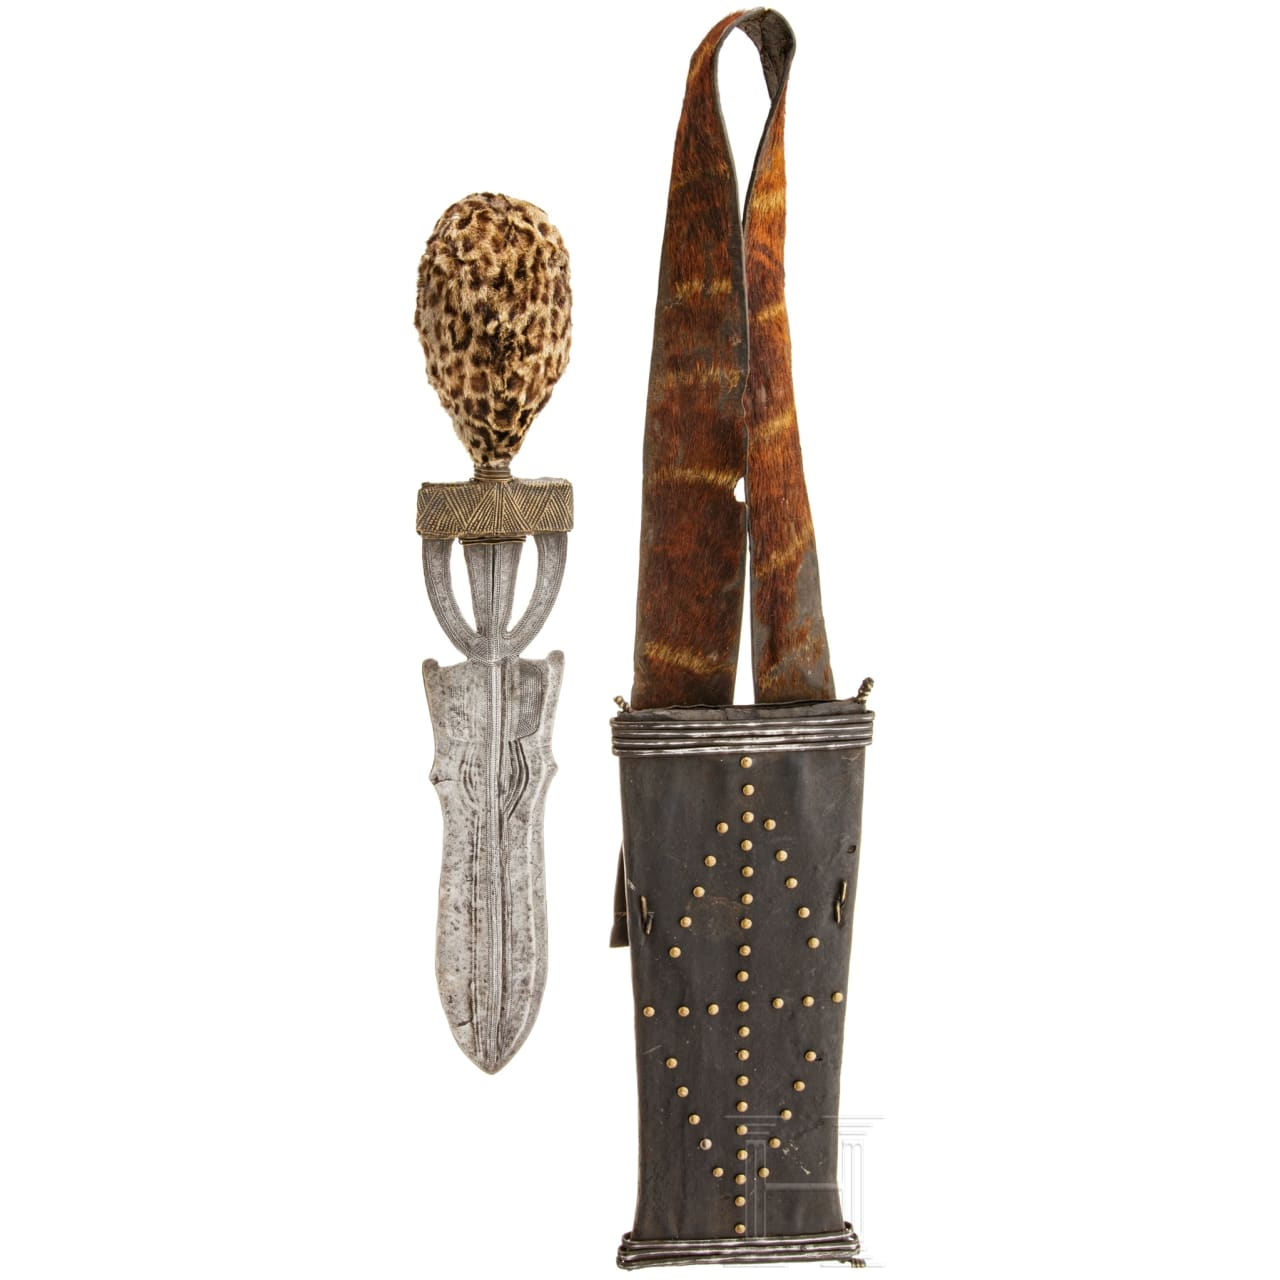 A knife of the Poto in Central Africa, circa 1900